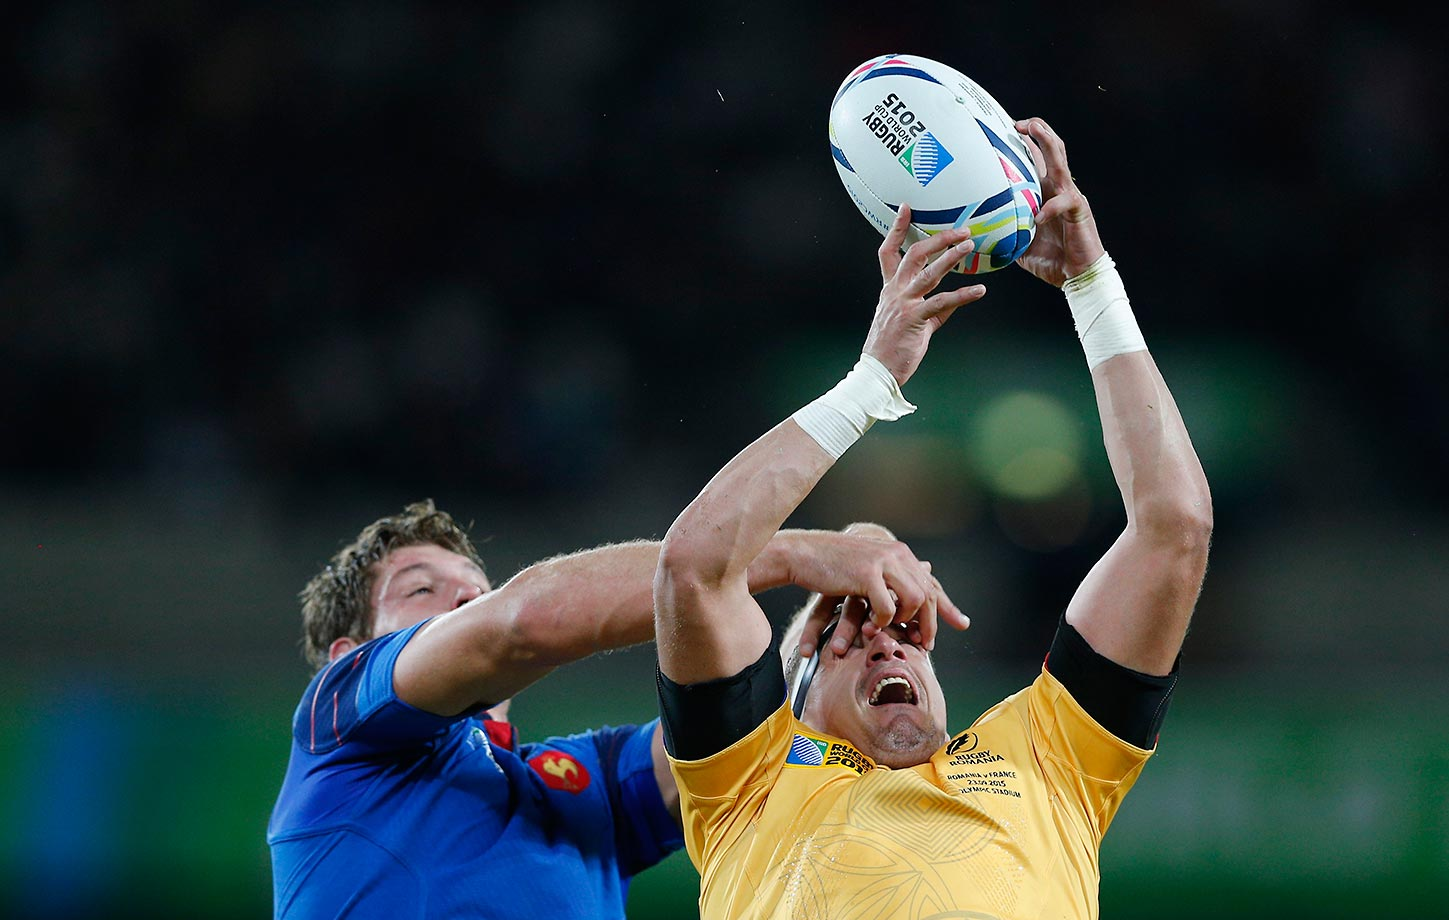 Alexandre Flanquart of France competes against Mihai Macovei of Romania during the Rugby World Cup Pool D match in London.